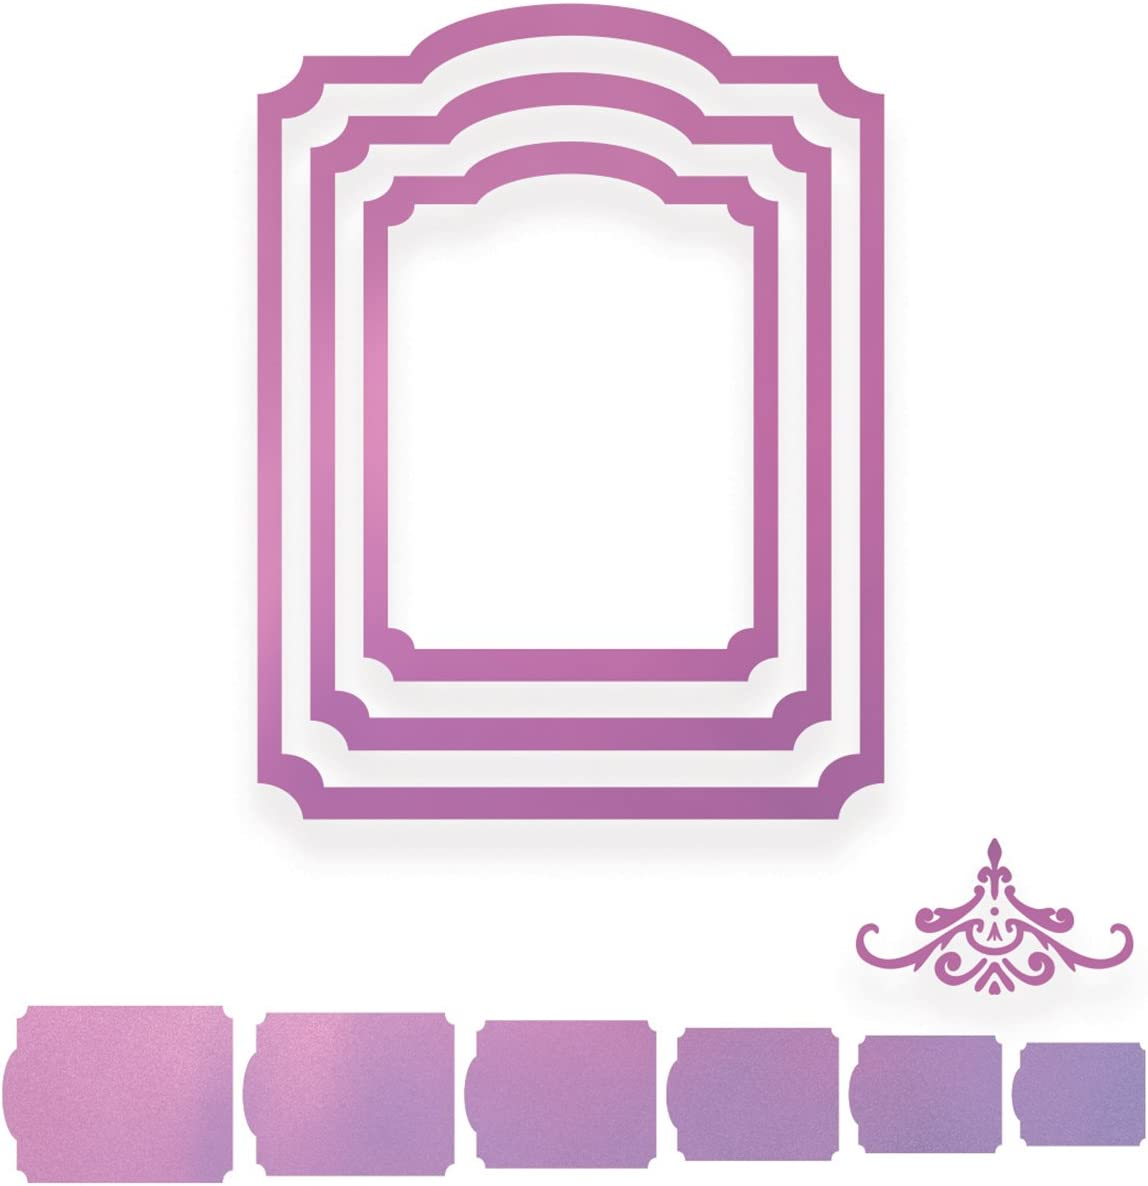 Nero Couture Creations Sweet Accenti Nesting Inverted Corner Frame Die